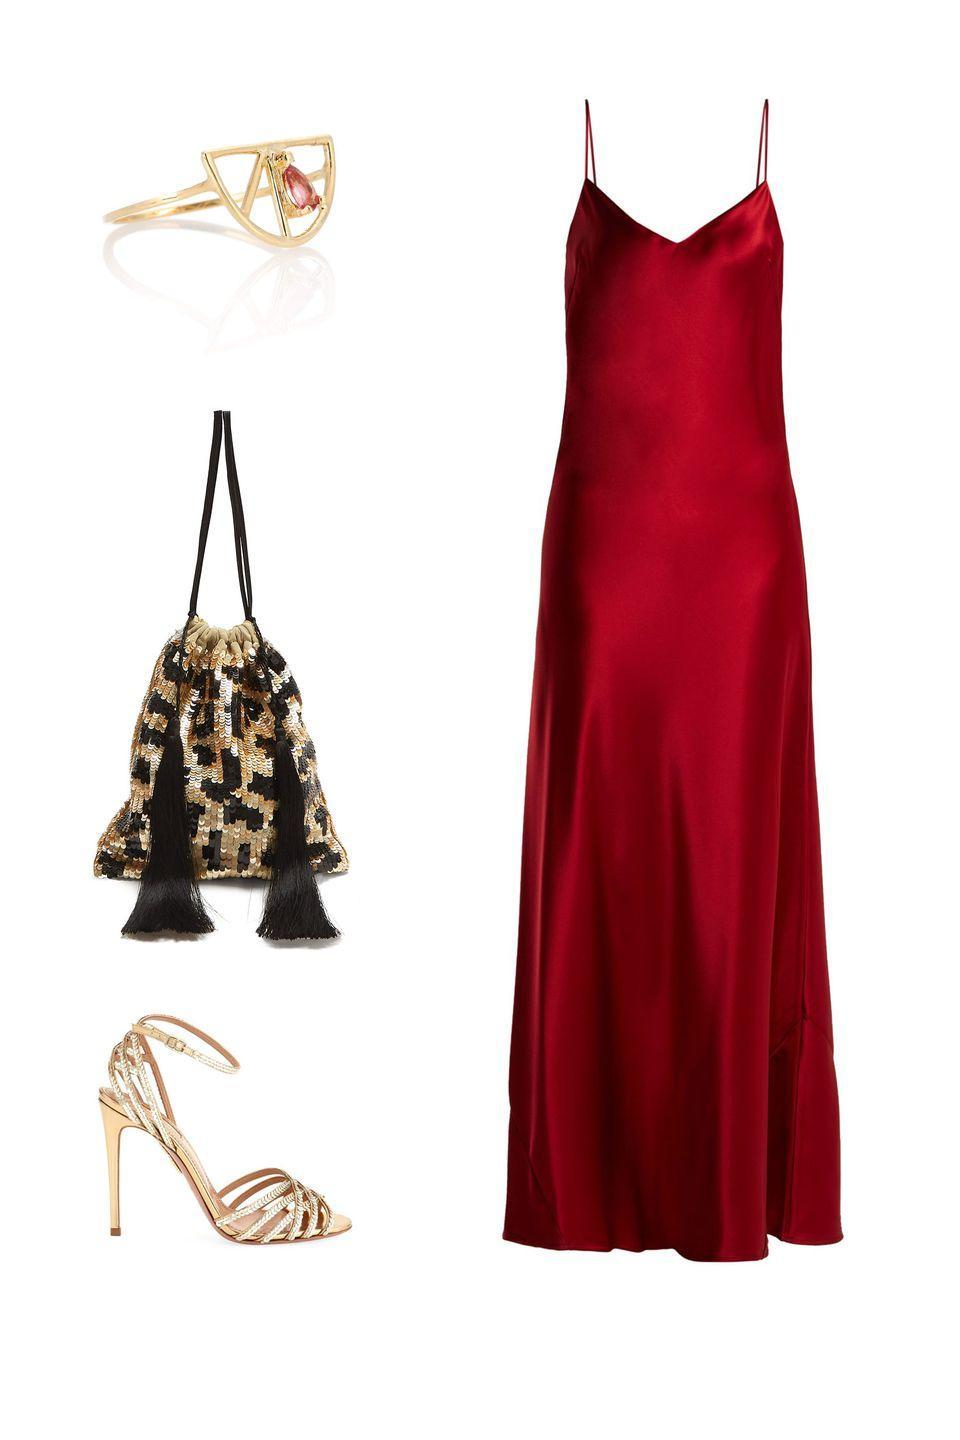 """<p>Pairing a sexy red slip with metallic accessories makes for a fun and flirty party look–but be sure to ground a dress this daring with minimalist black sandals and dainty, sleek jewelry to avoid your look coming off overwrought.</p><p><em><strong>Galvan</strong> satin gown, $895, <a rel=""""nofollow noopener"""" href=""""https://www.matchesfashion.com/us/products/1221077?rffrid=sem.Google.n=g.cid=925924062.aid=48744407440.k=.mty=.d=c.adp=1o2.cr=220140916055.tid=aud-429262818371:pla-356642144869.pid=1221077000007.ppid=356642144869.lpm=9012934.adty=pla.prl=en&utm_content=1221077000007&utm_term=356642144869.%5Bvalue%5D.&gclid=Cj0KCQjw77TbBRDtARIsAC4l83lzFpqlBXc8zbGUx0tp2ZA5PEqlE9lZ6zJ_XnkZnDCcT3o171l_NEgaAgZIEALw_wcB&gclsrc=aw.ds"""" target=""""_blank"""" data-ylk=""""slk:matchesfashion.com"""" class=""""link rapid-noclick-resp"""">matchesfashion.com</a>; <strong>Aquazzura</strong> sandals, $895, <a rel=""""nofollow noopener"""" href=""""https://www.bergdorfgoodman.com/Aquazzura-Studio-Sequin-Metallic-Leather-Sandal-with-Ankle-Strap/prod138810263_cat574500__/p.prod?icid=&searchType=EndecaDrivenCat&rte=%252Fcategory.service%253FitemId%253Dcat574500%2526pageSize%253D120%2526No%253D0%2526Ns%253DPCS_SORT%2526refinements%253D724&eItemId=prod138810263&cmCat=product"""" target=""""_blank"""" data-ylk=""""slk:bergdorfgoodman.com"""" class=""""link rapid-noclick-resp"""">bergdorfgoodman.com</a>; <strong>Attico</strong> leopard sequin pouch, $517, <a rel=""""nofollow noopener"""" href=""""https://www.matchesfashion.com/us/products/Attico-Leopard-sequinned-pouch--1230610"""" target=""""_blank"""" data-ylk=""""slk:matchesfashion.com"""" class=""""link rapid-noclick-resp"""">matchesfashion.com</a>; <strong>Aliita</strong> ring, $332, <a rel=""""nofollow noopener"""" href=""""https://www.mytheresa.com/en-de/aliita-media-naranja-9kt-yellow-gold-and-pink-tourmaline-ring-889258.html?catref=category"""" target=""""_blank"""" data-ylk=""""slk:mytheresa.com"""" class=""""link rapid-noclick-resp"""">mytheresa.com</a>.</em></p>"""